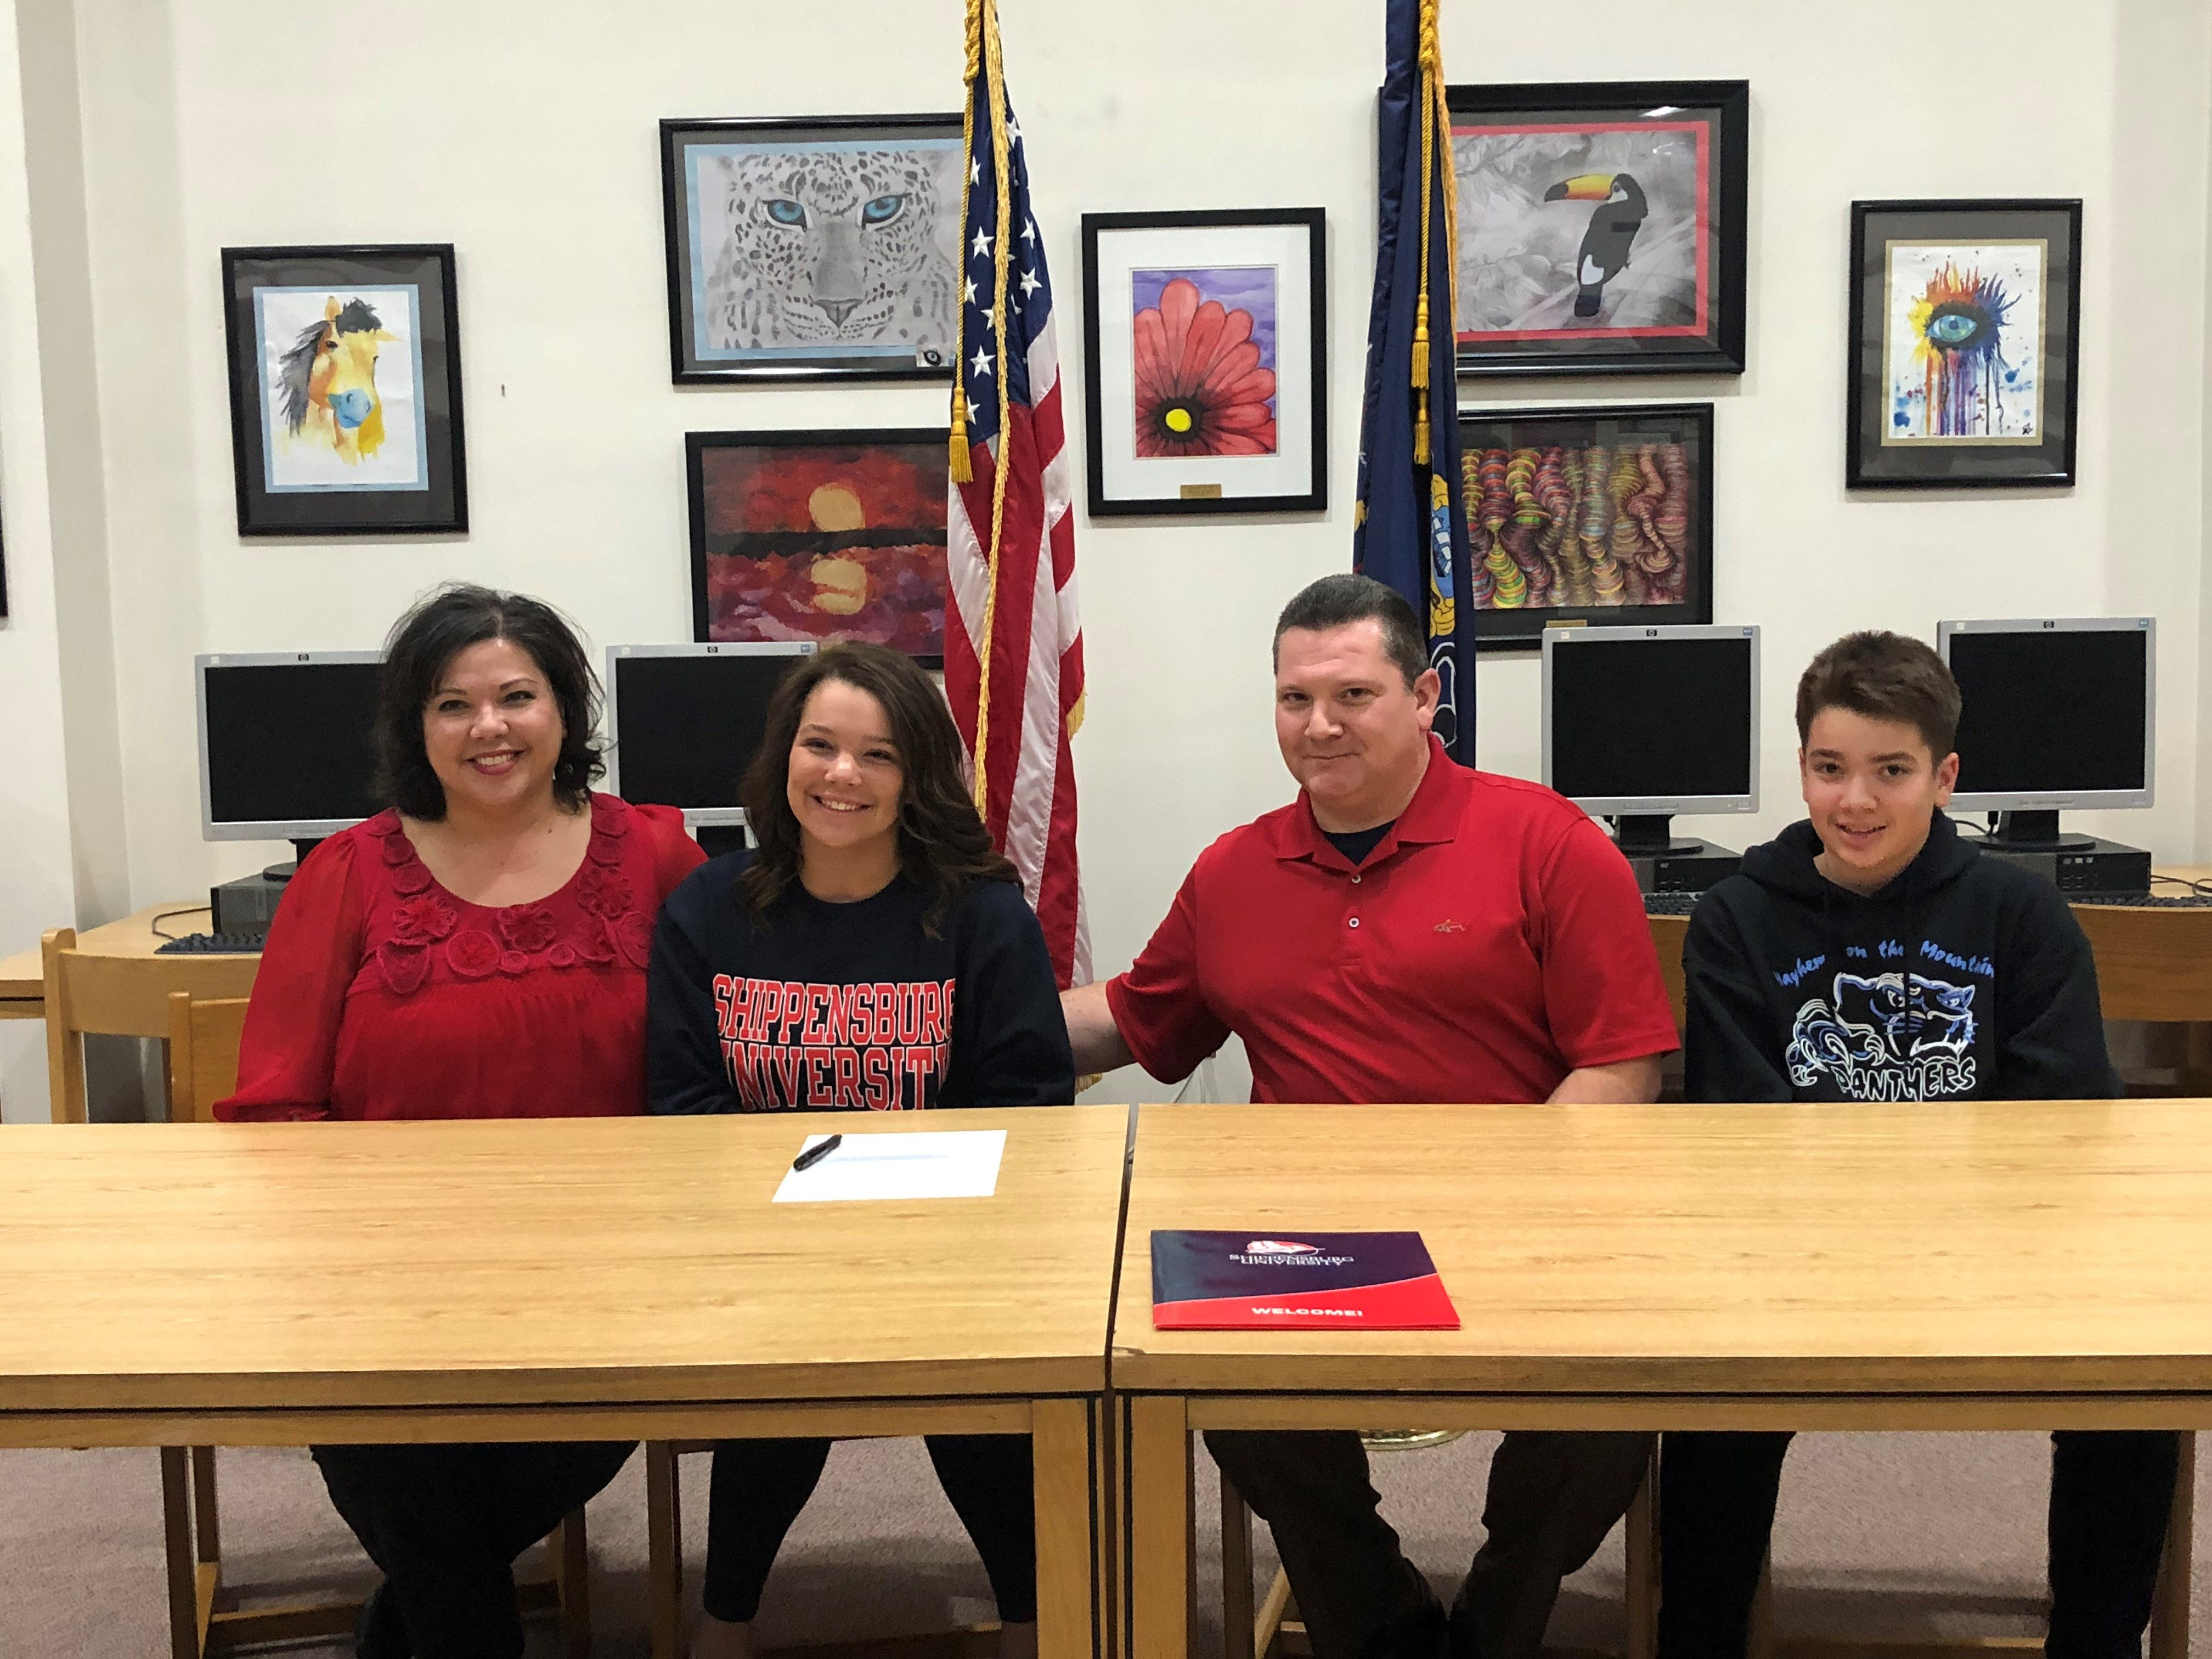 Madison signing with Shippensburg University for swimming.